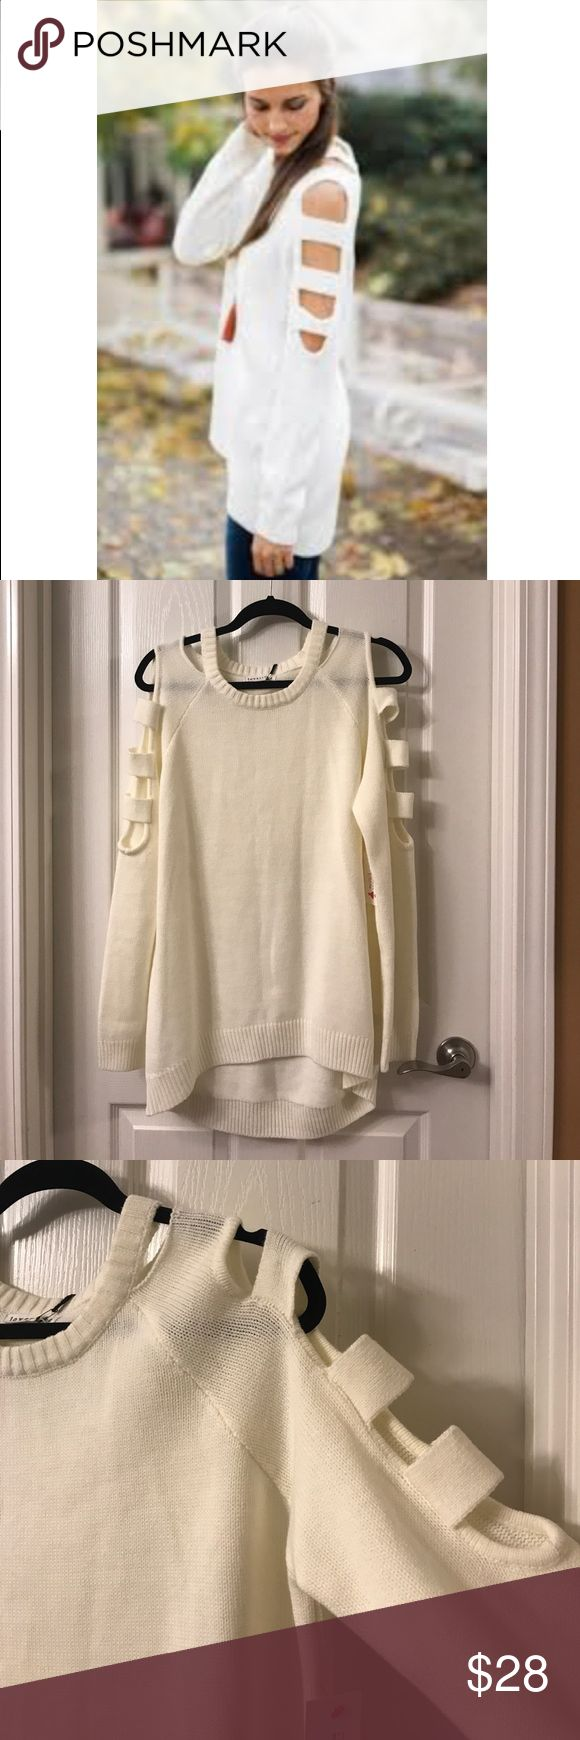 Red Dress Boutique Ivory Sweater with Cutouts Ivory sweater with cutouts down the sleeve. Size medium. New with tags. Never worn. I've included a picture (sorry for low quality - it was the only one I could find) of a model wearing the garment to show the fit. The Red Dress Boutique Sweaters Crew & Scoop Necks